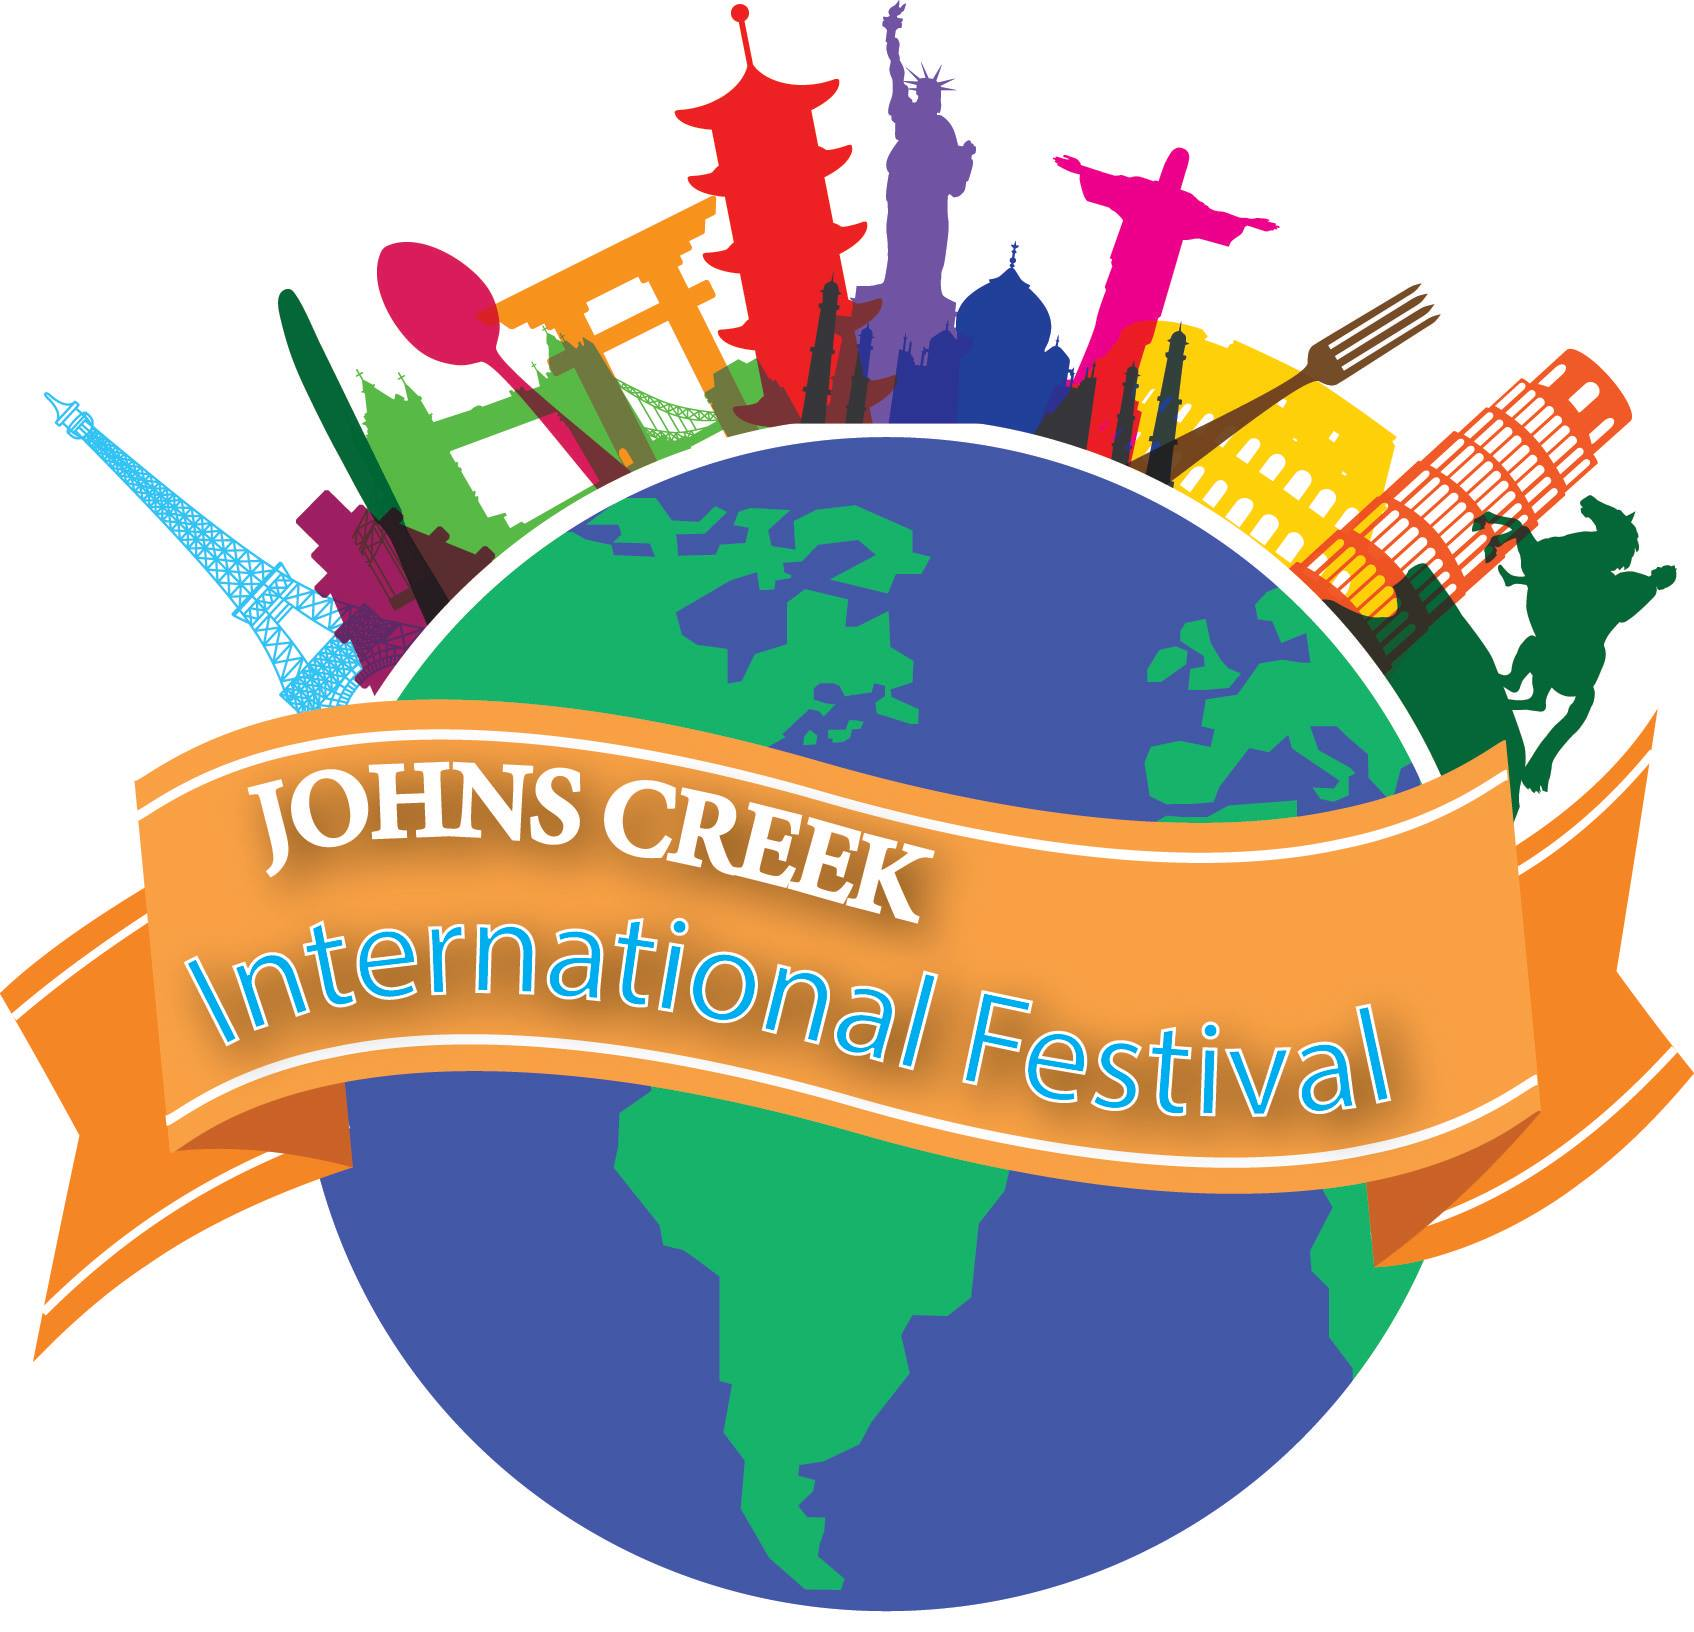 Johns Creek International Festival is coming April 21